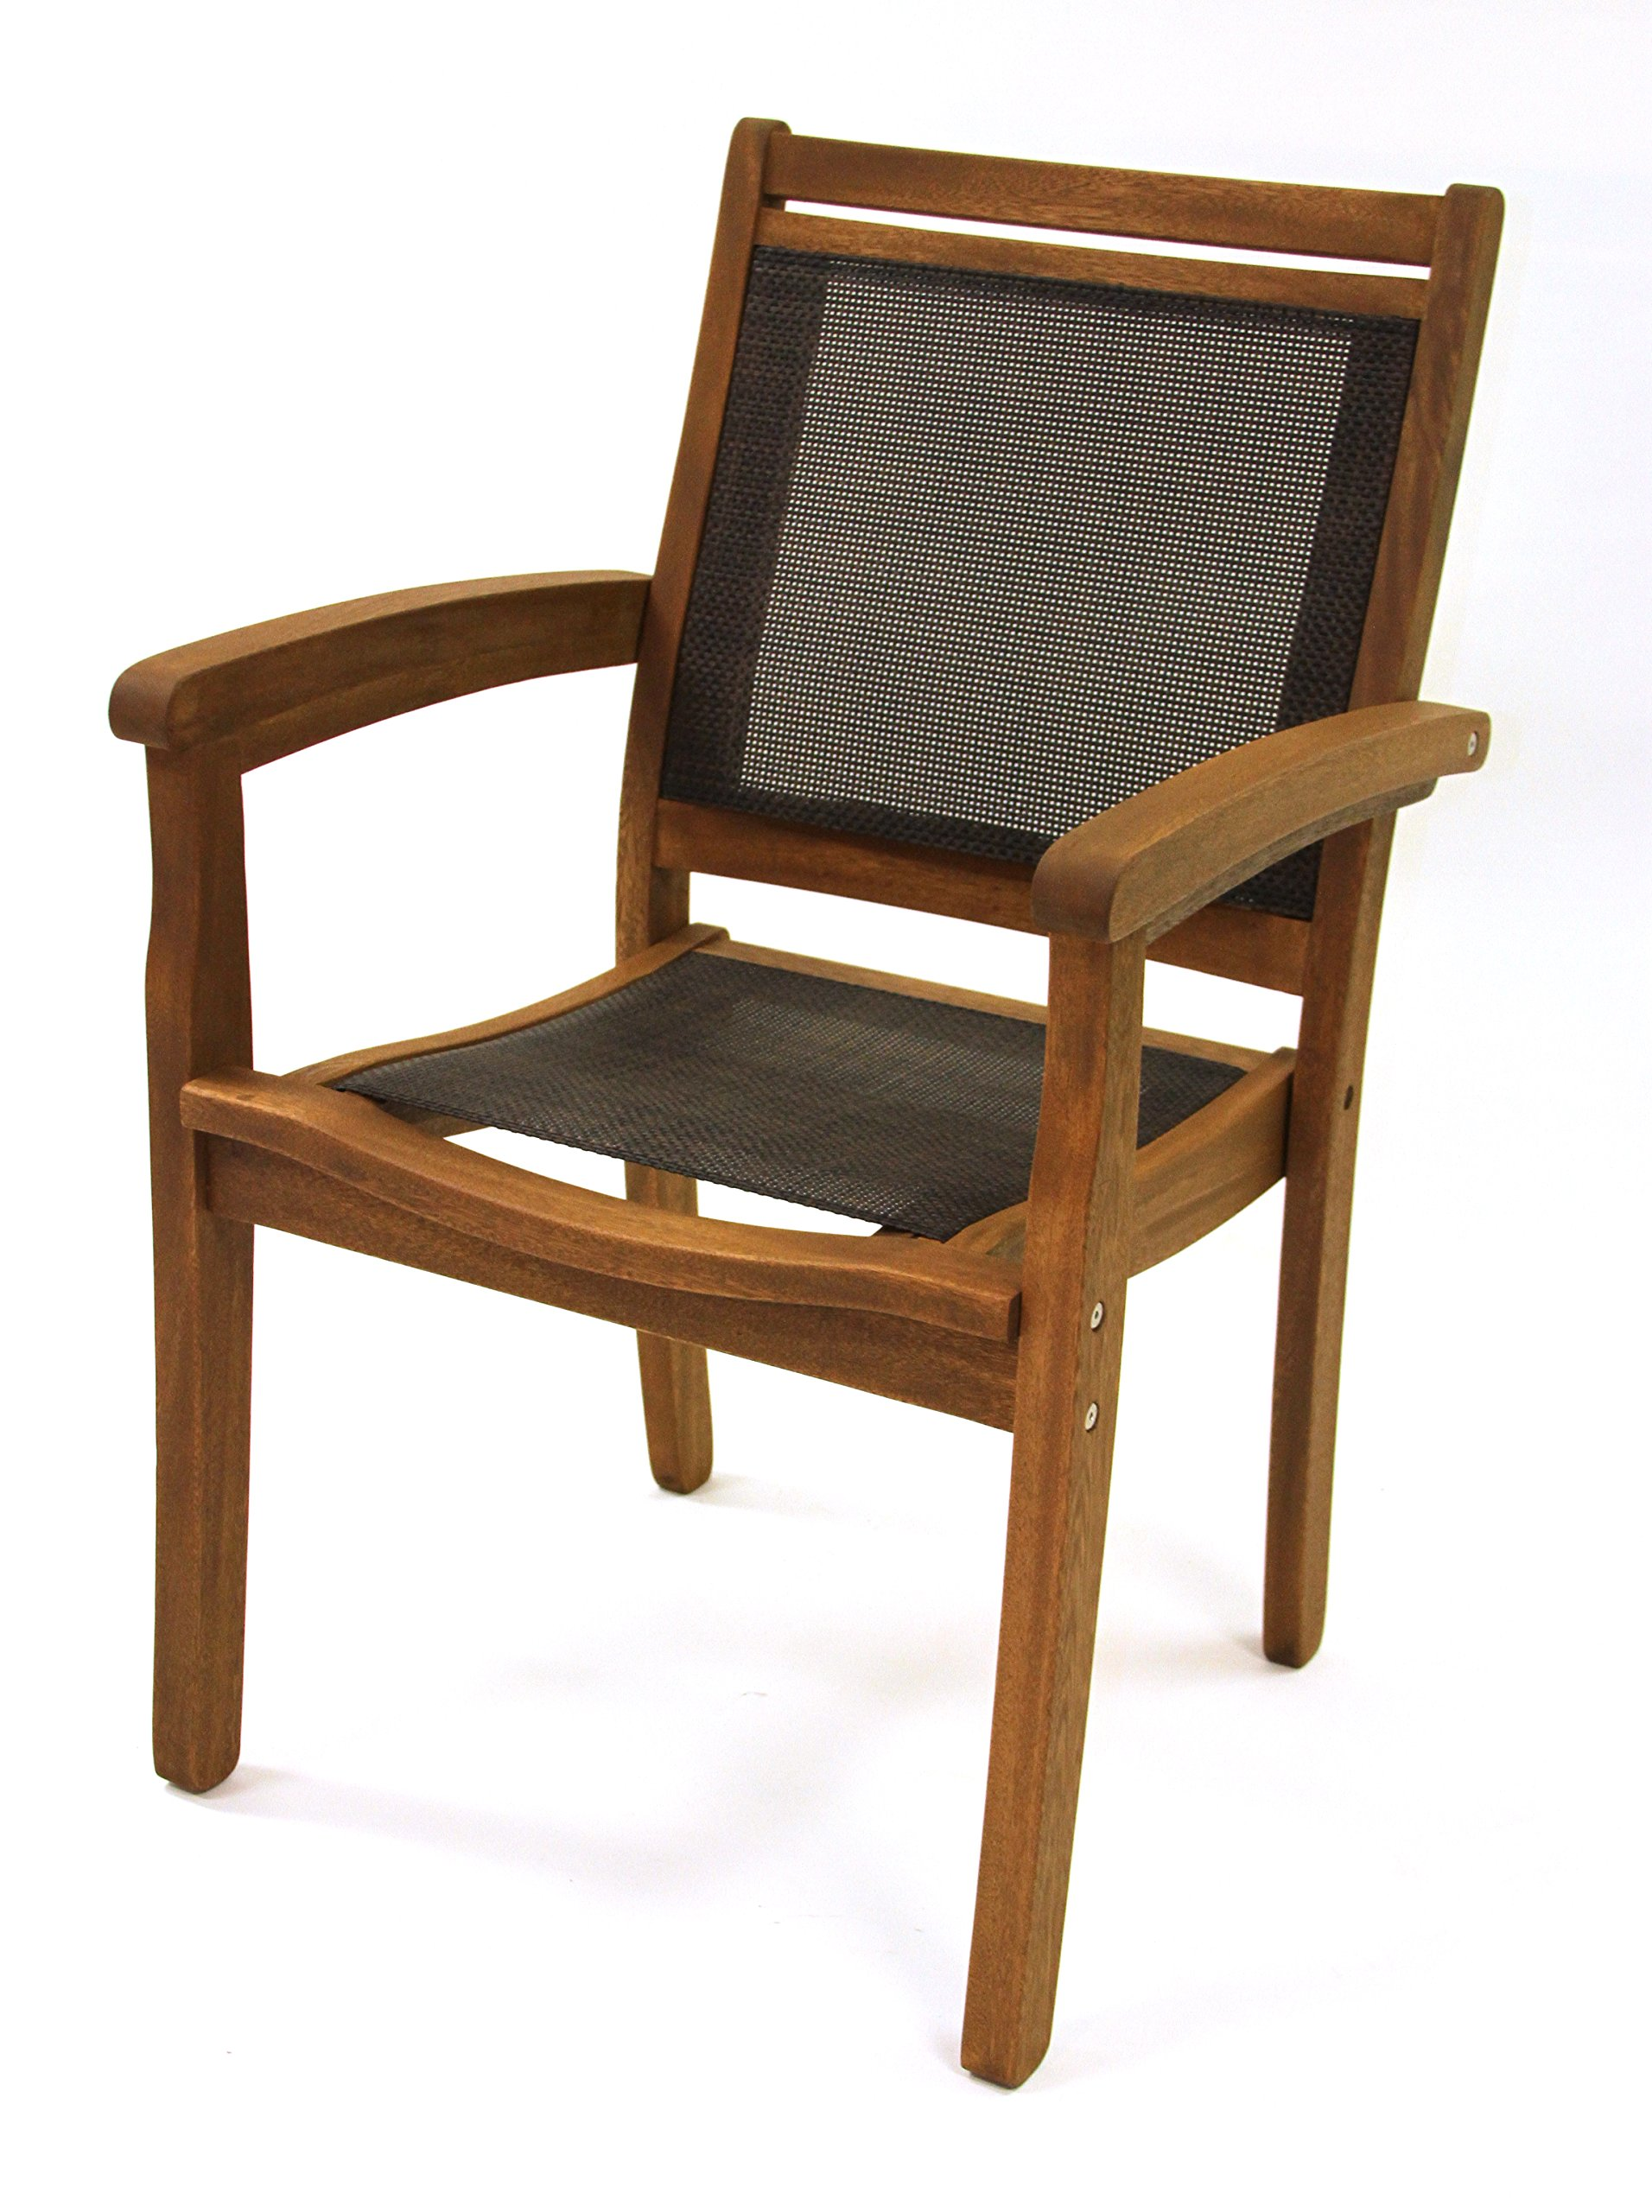 Outdoor Interiors 10555DK Sling and Eucalyptus Stackable Arm Chair, Dark Brown by Outdoor Interiors